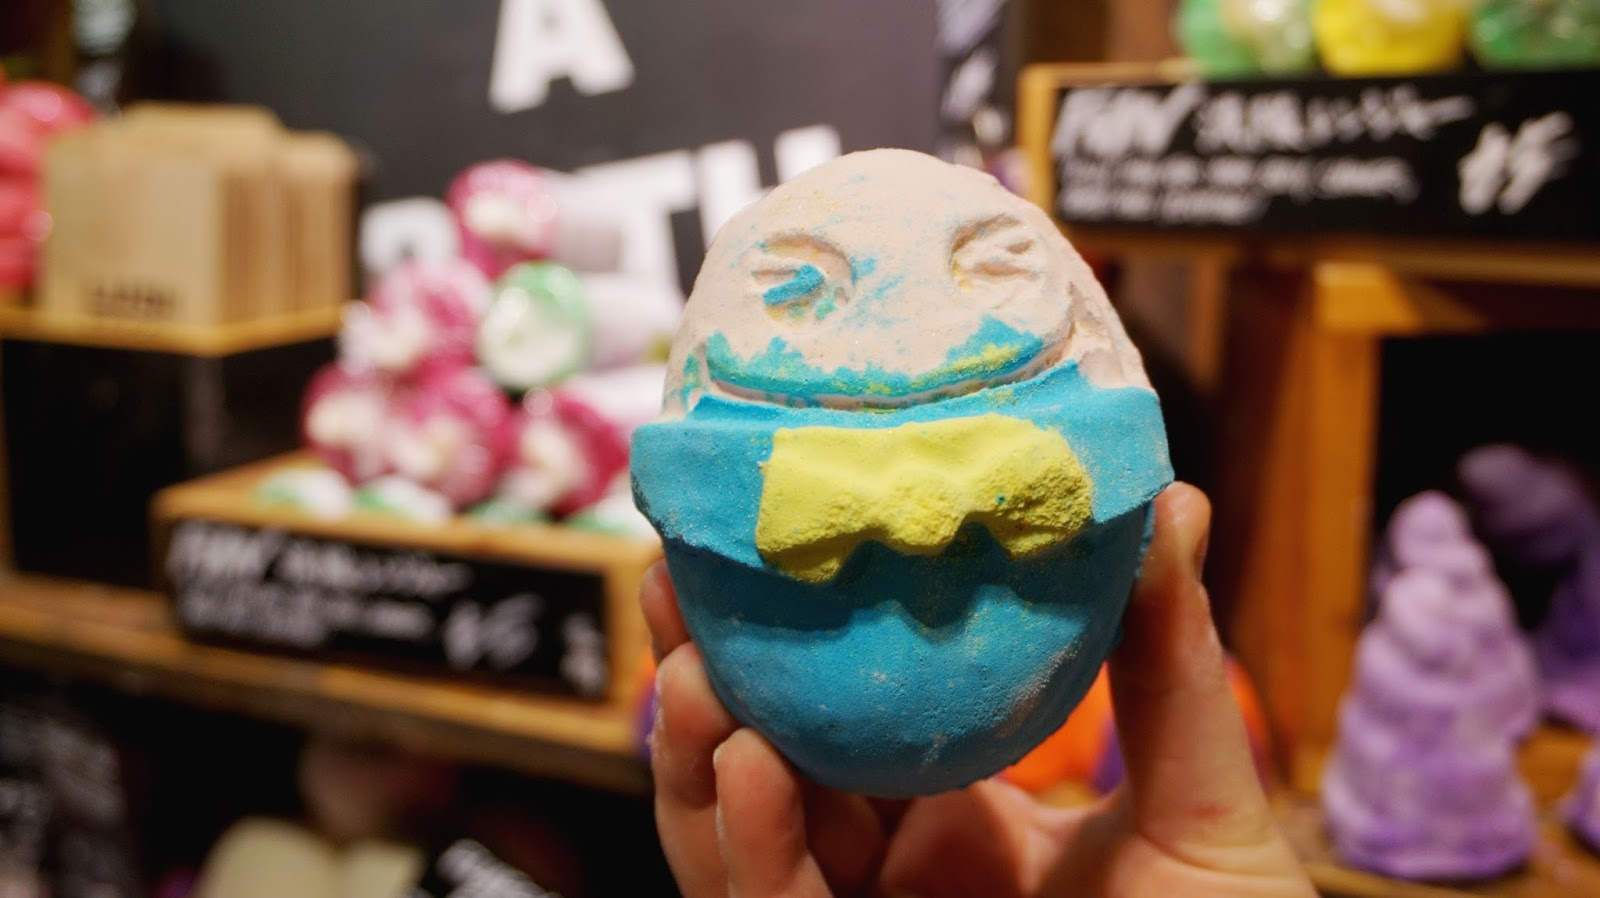 lush cosmetics spring product collection humpty dumpty bath bomb 2016